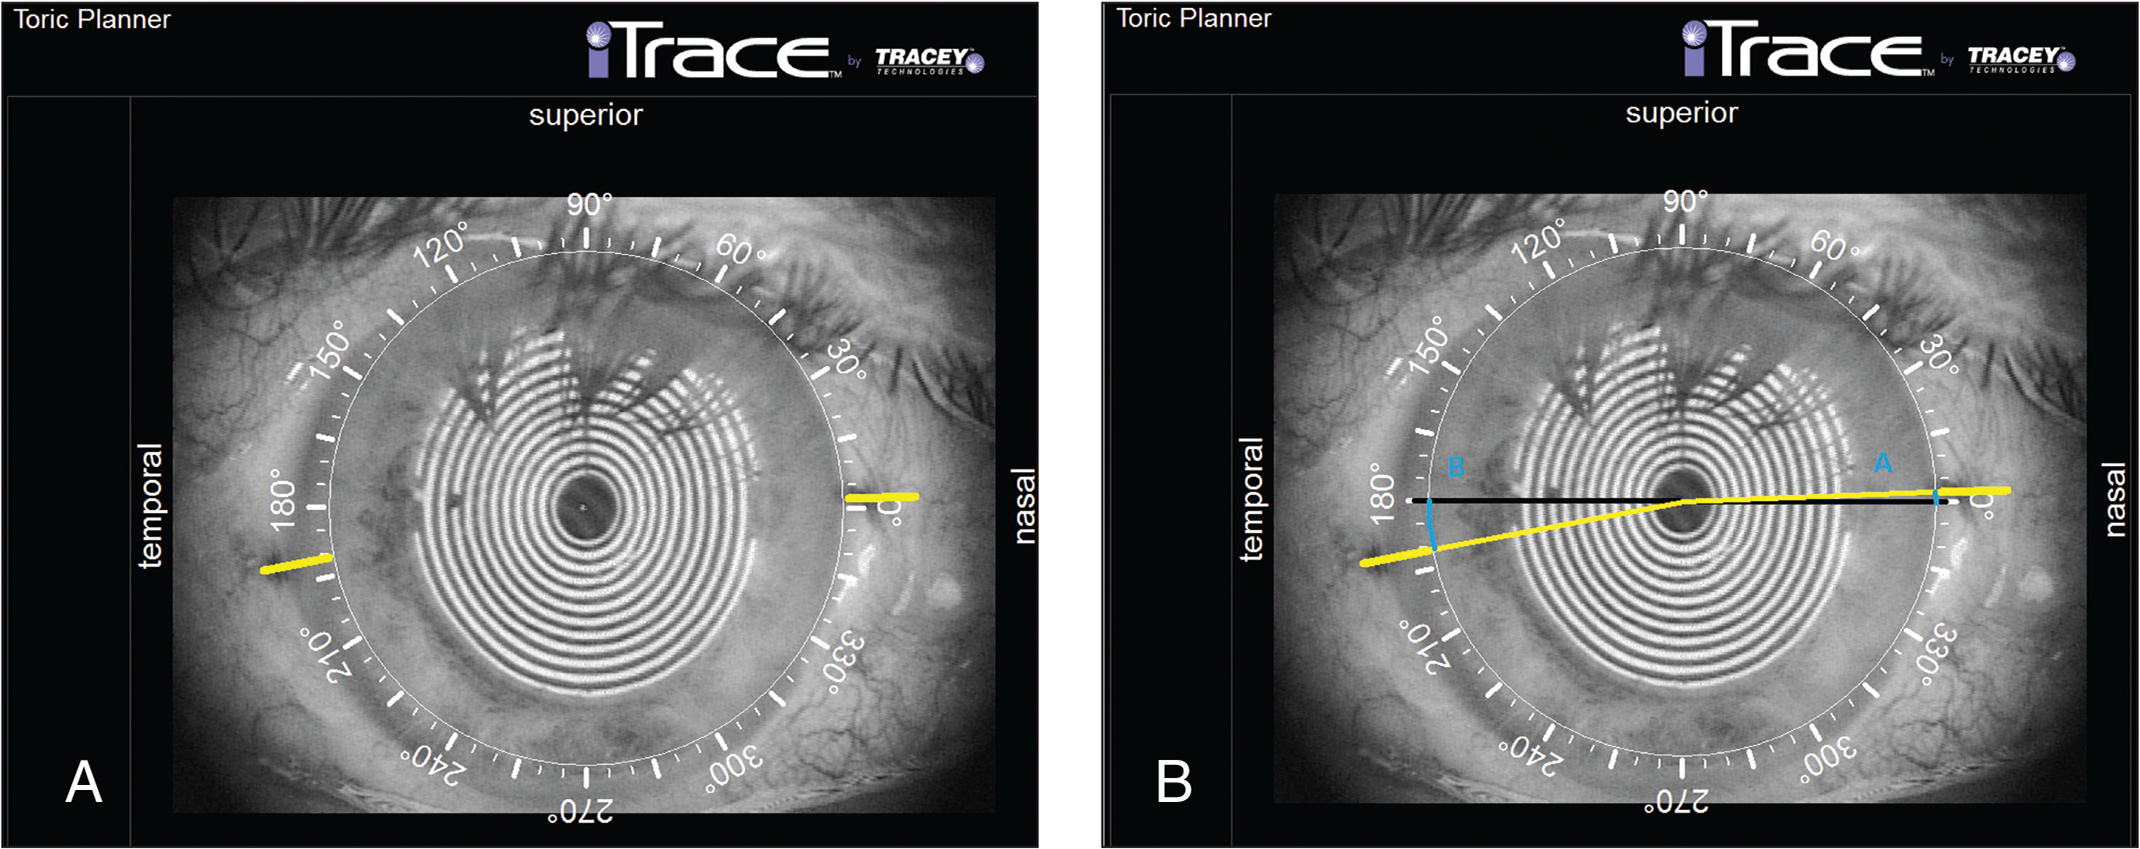 Measurement of reference analysis by iTrace (Tracey Technologies, Houston, TX) in a sample patient. The Zaldivar calipers on the toric planning software indicate the angle between the horizontal reference meridian and the line connecting the corneal center and the marking point on the (A) right and (B) left limbus.